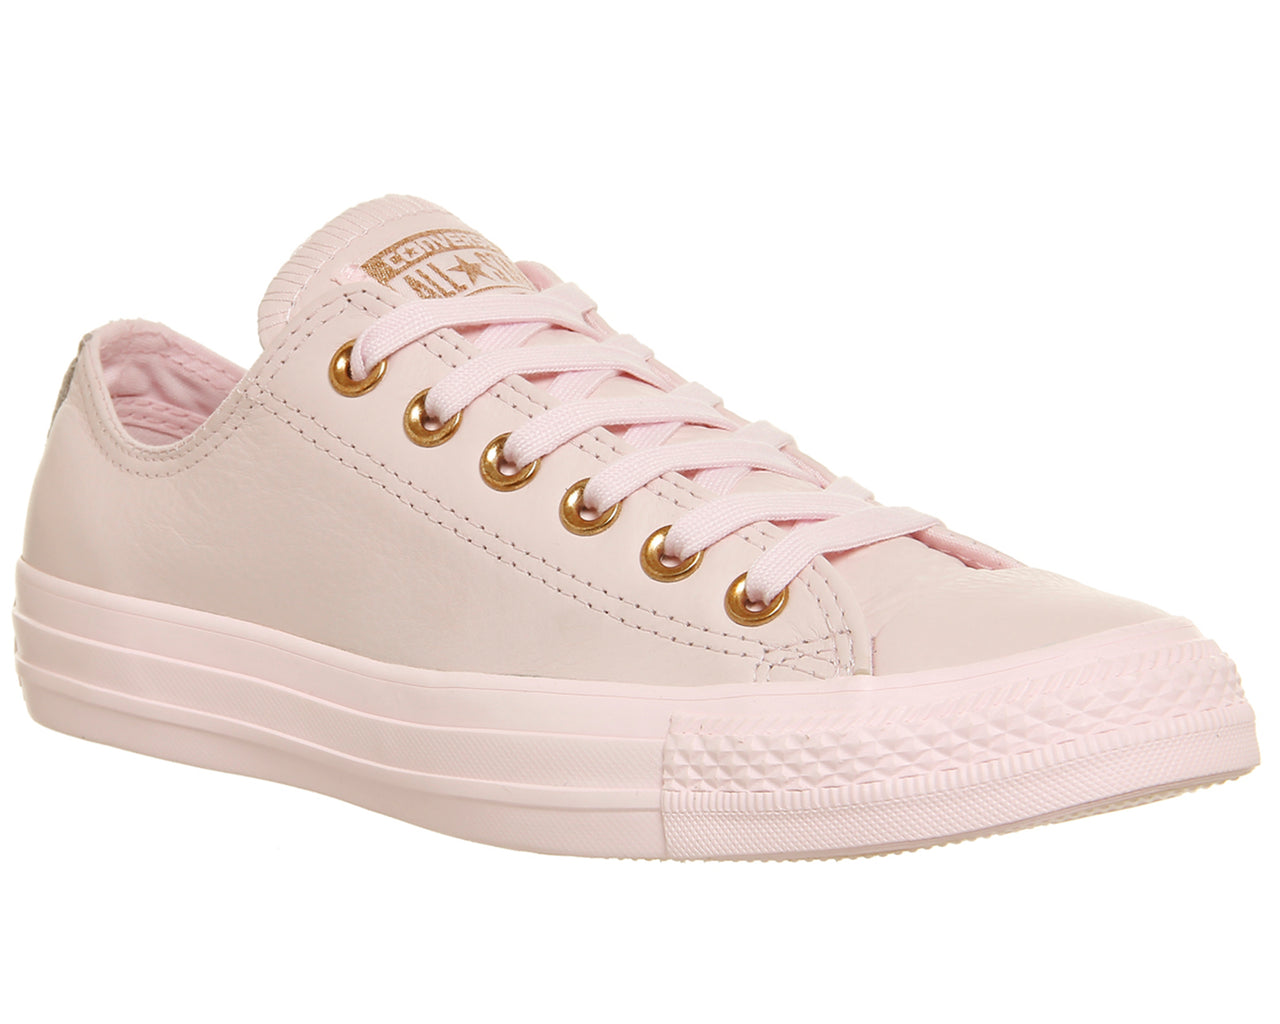 Womens Converse Allstar Low Leather Artic Pink Rose Gold Trainers